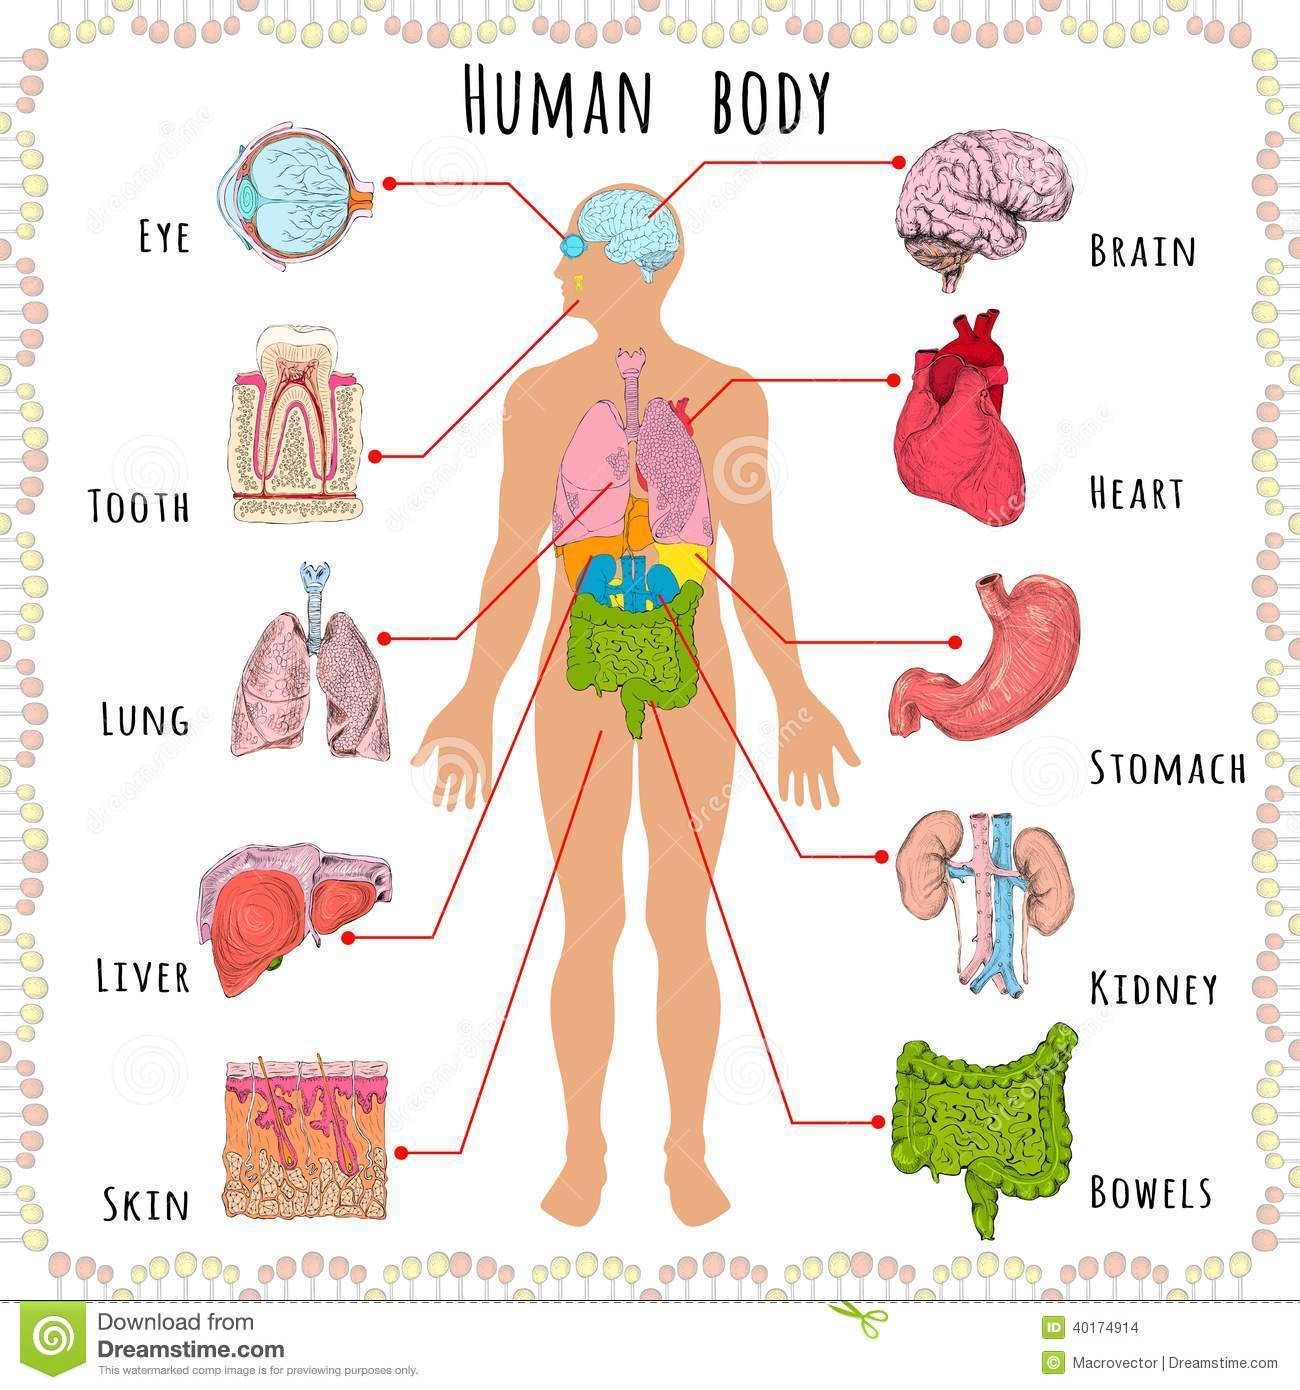 parts of the human body clipart - Clipground